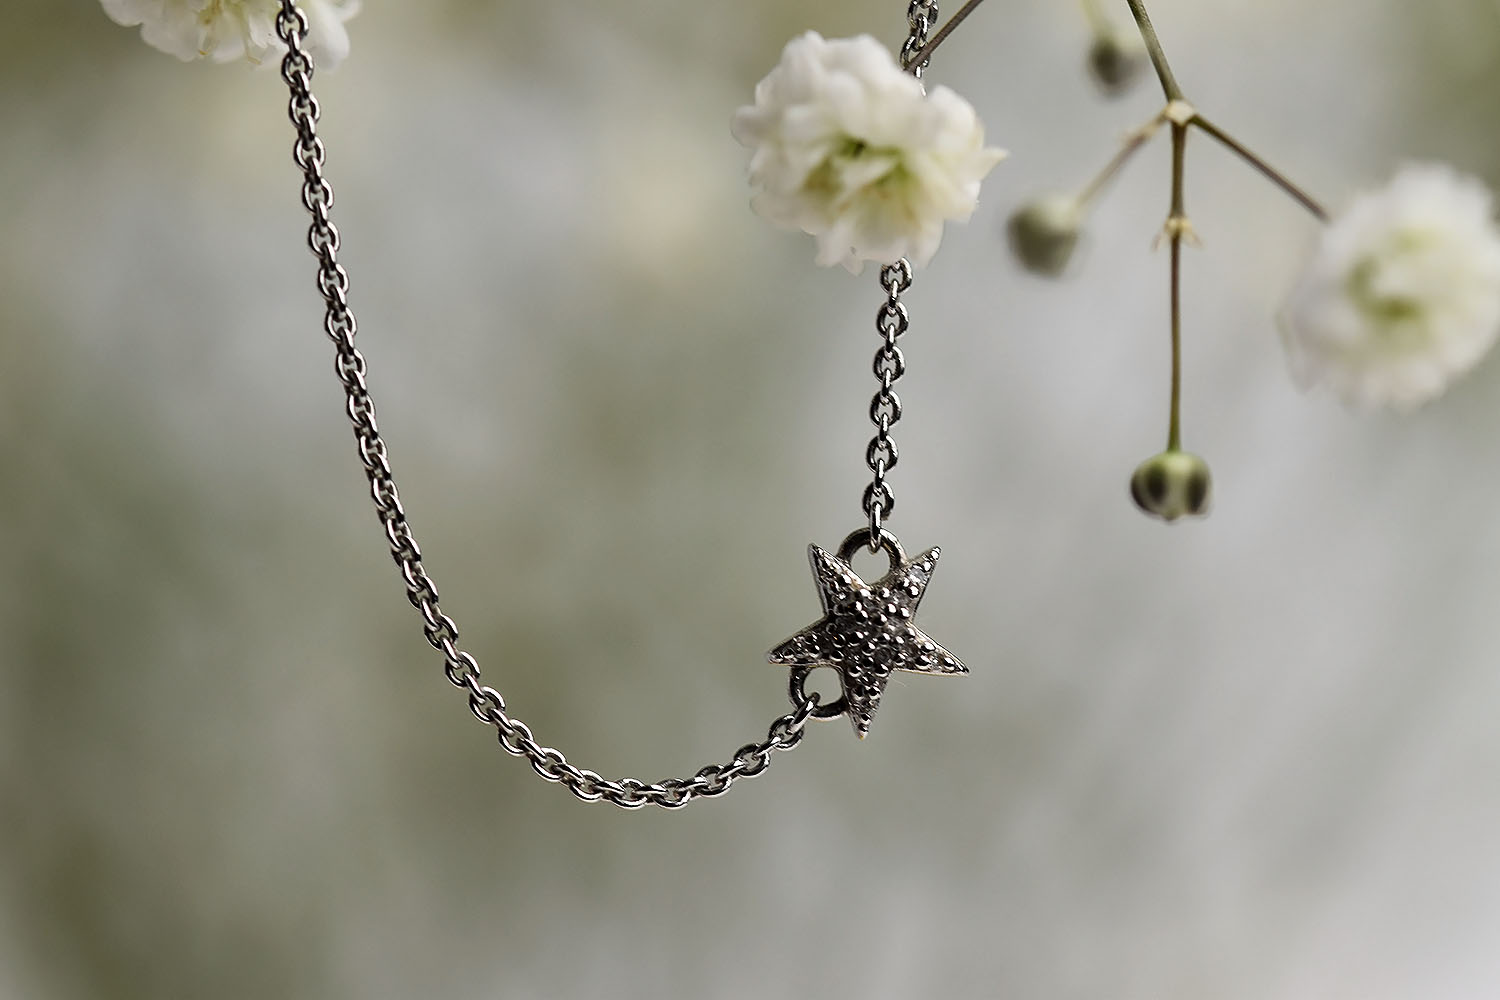 My current silver jewellery favourites | Links of London Star bracelet